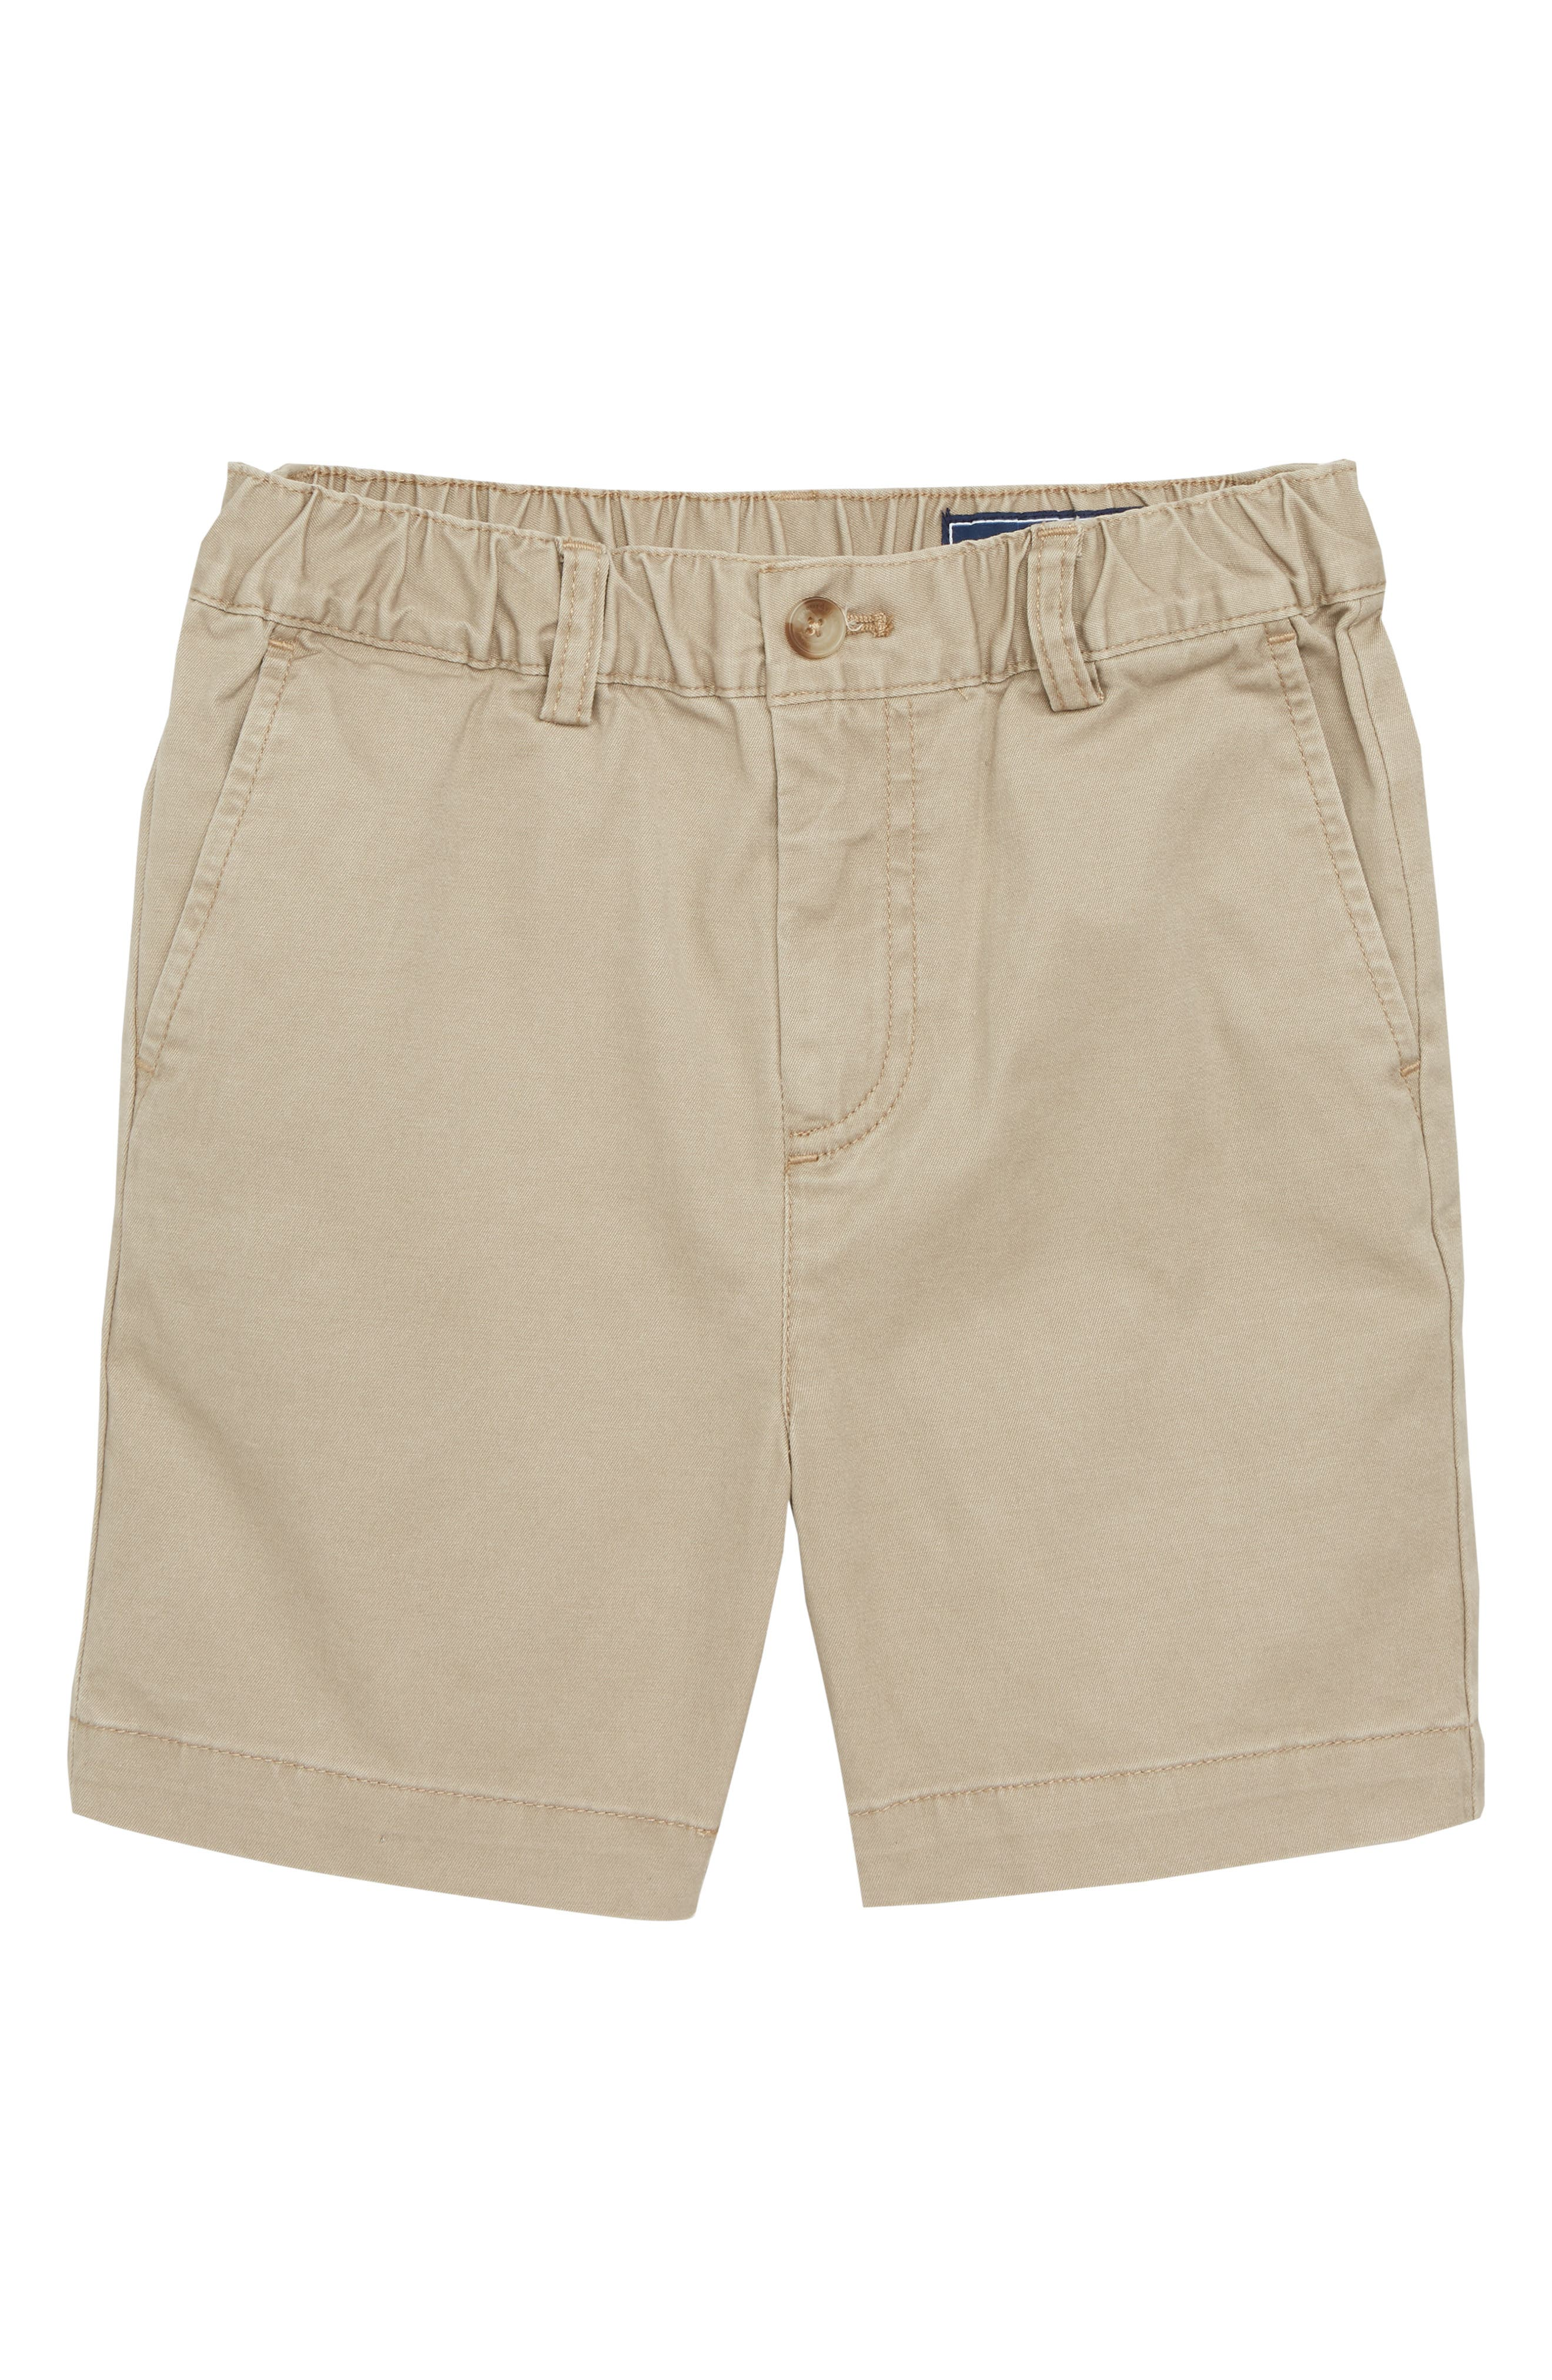 Stretch Jetty Shorts,                             Main thumbnail 1, color,                             250